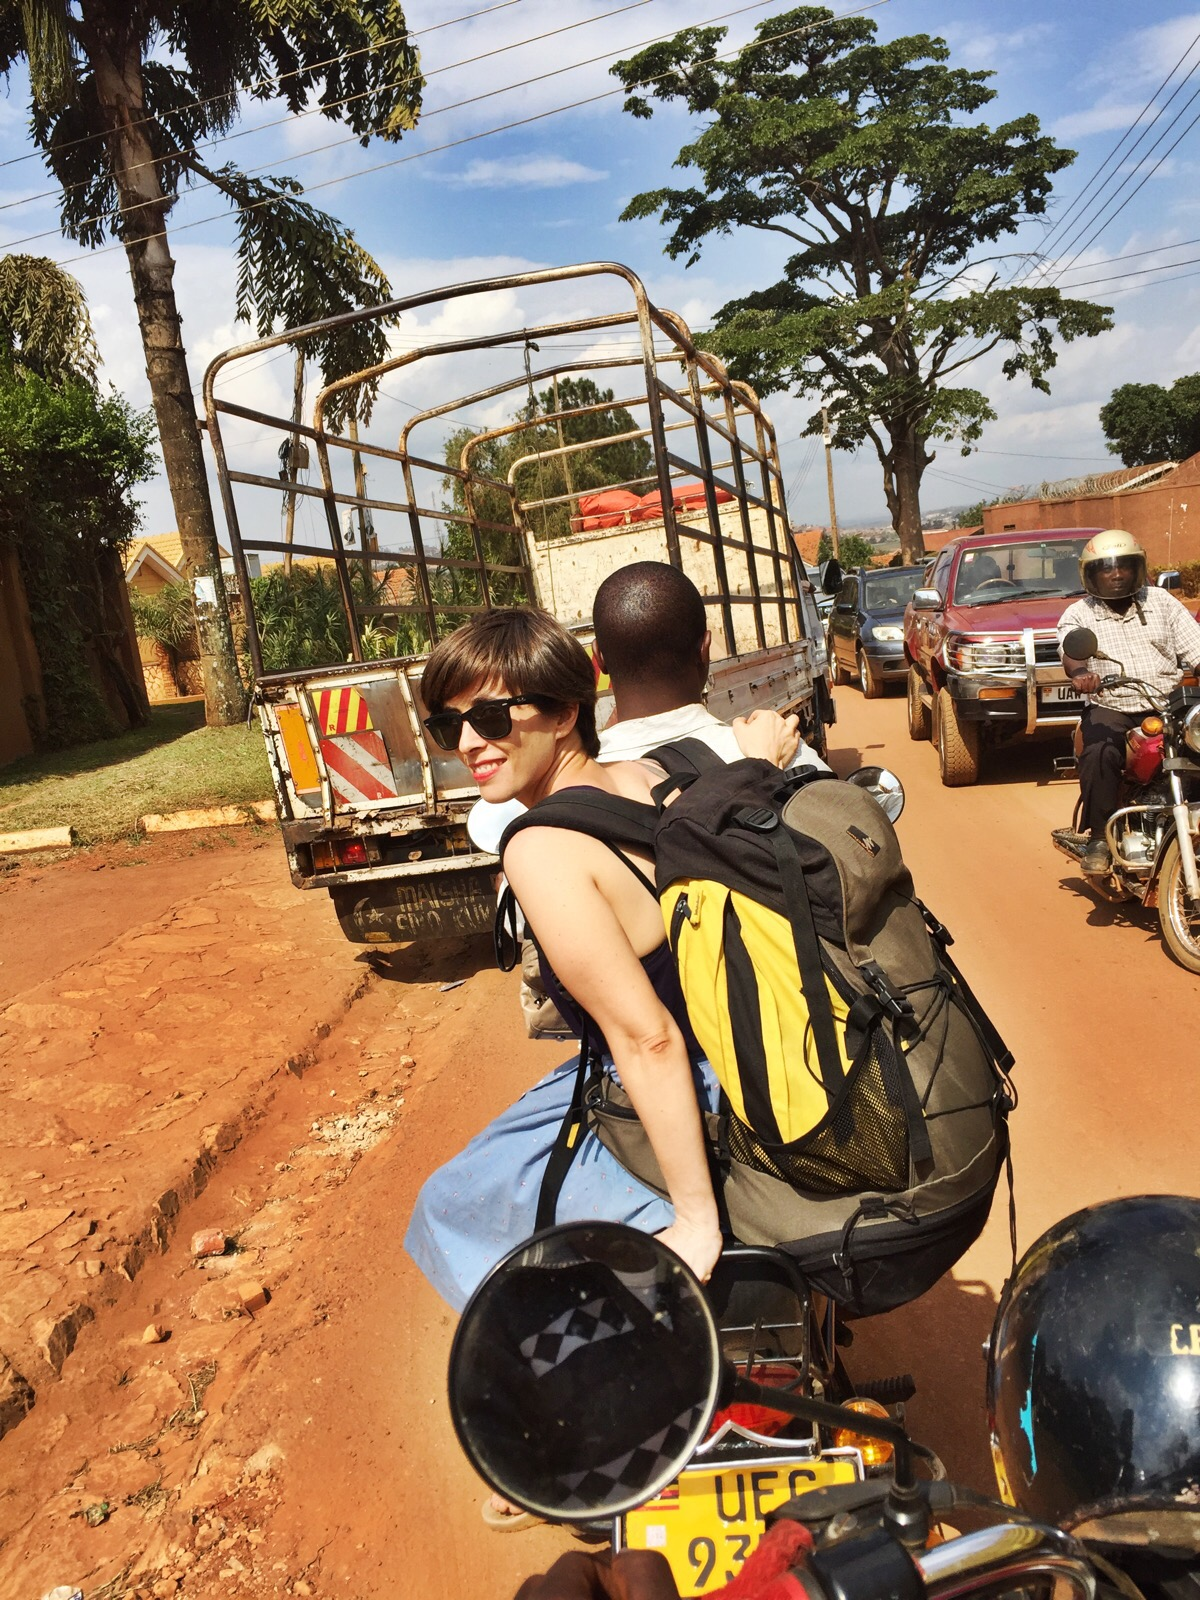 East africa backpackers